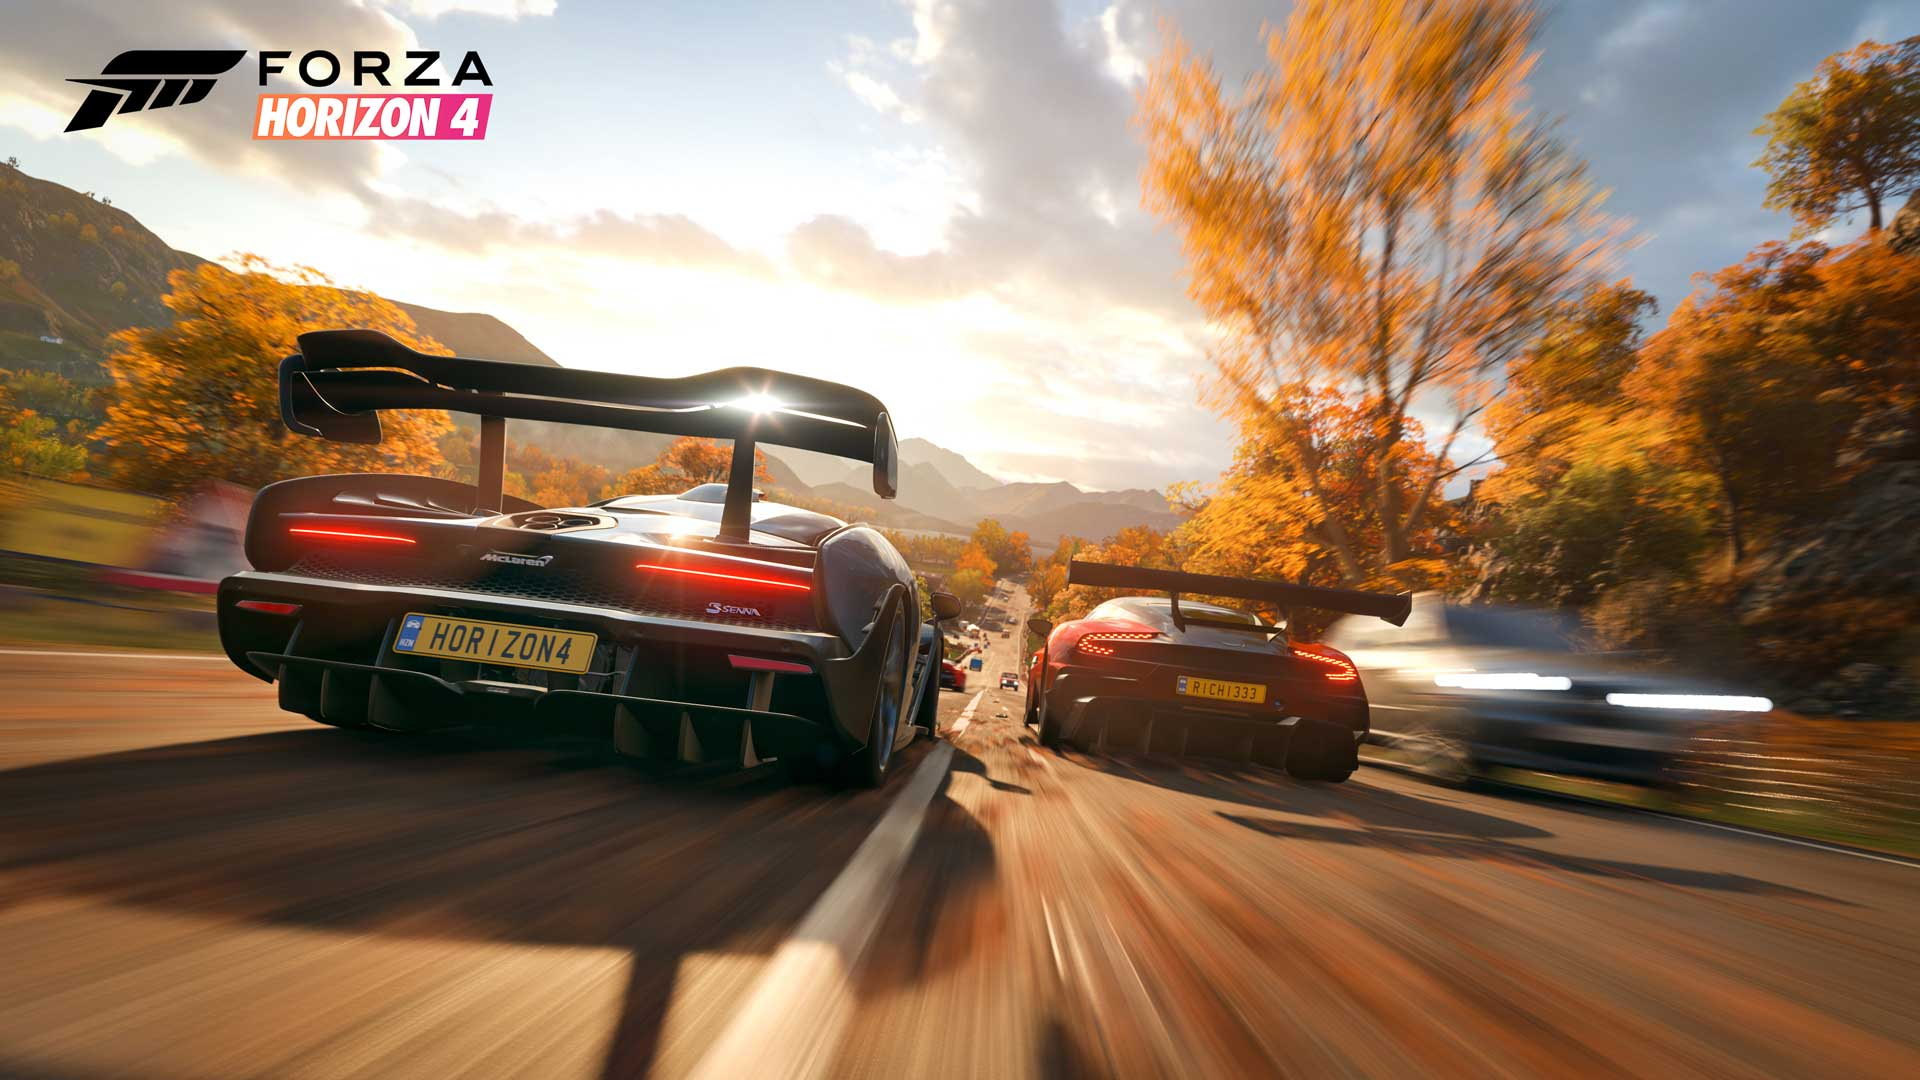 Place 2 out of 10: Forza Horizon 4